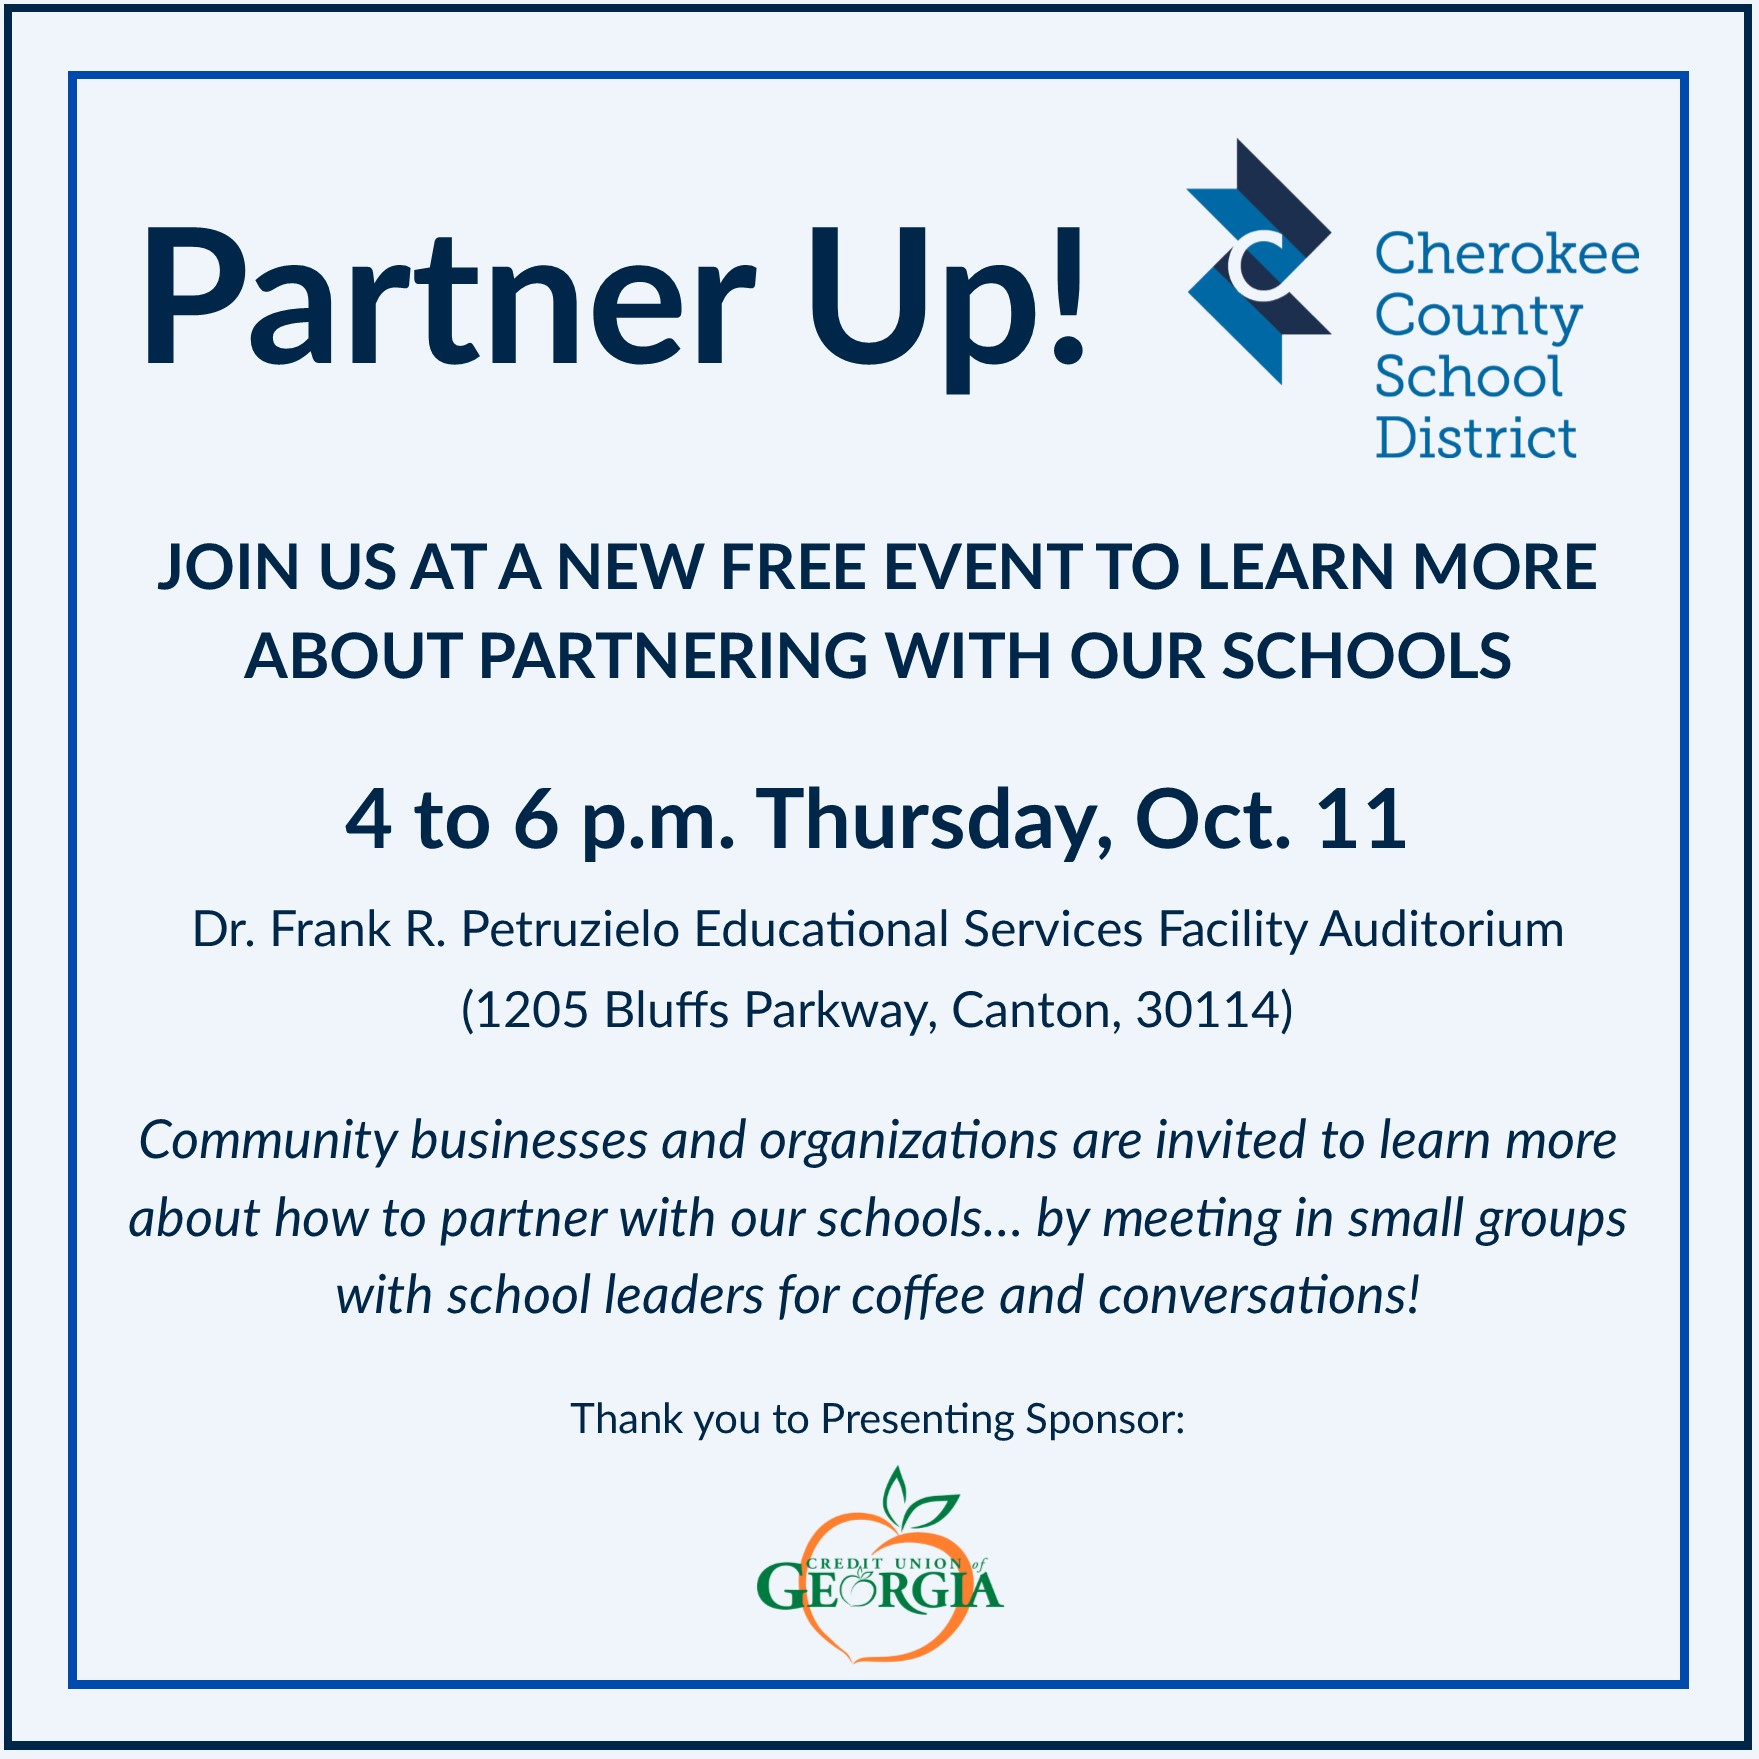 CCSD Partner Up 2018 invite